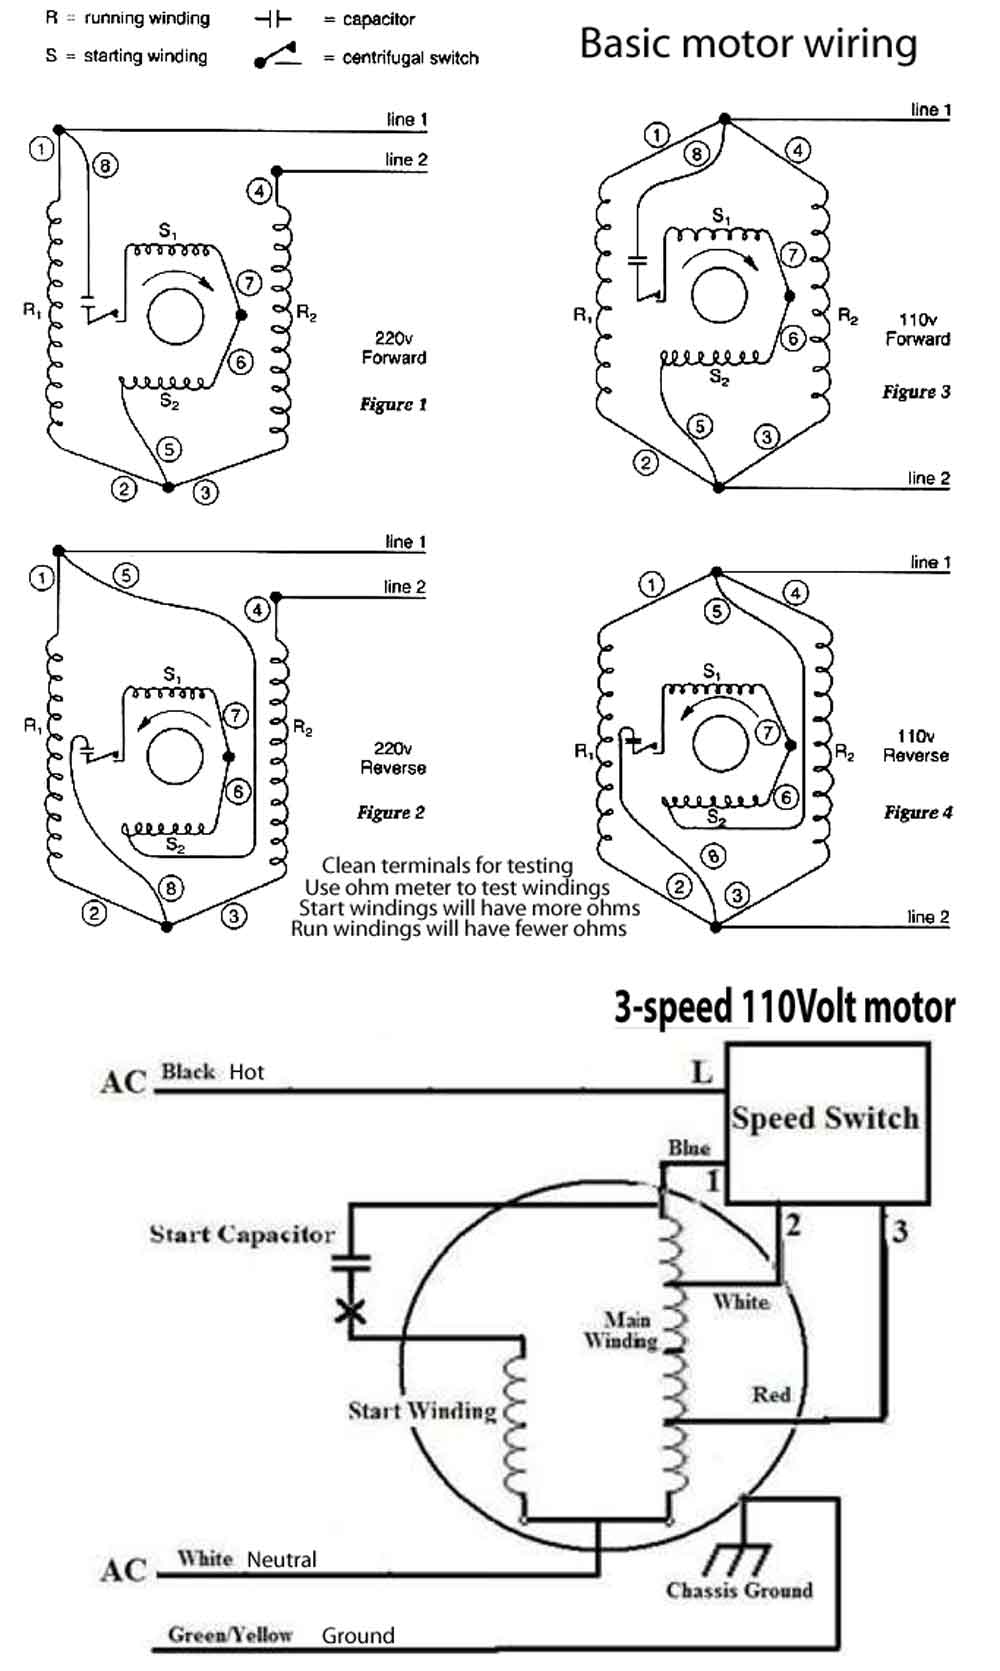 Motor wiring 500 how to wire 3 speed fan switch jin you e70469 wiring diagram at soozxer.org